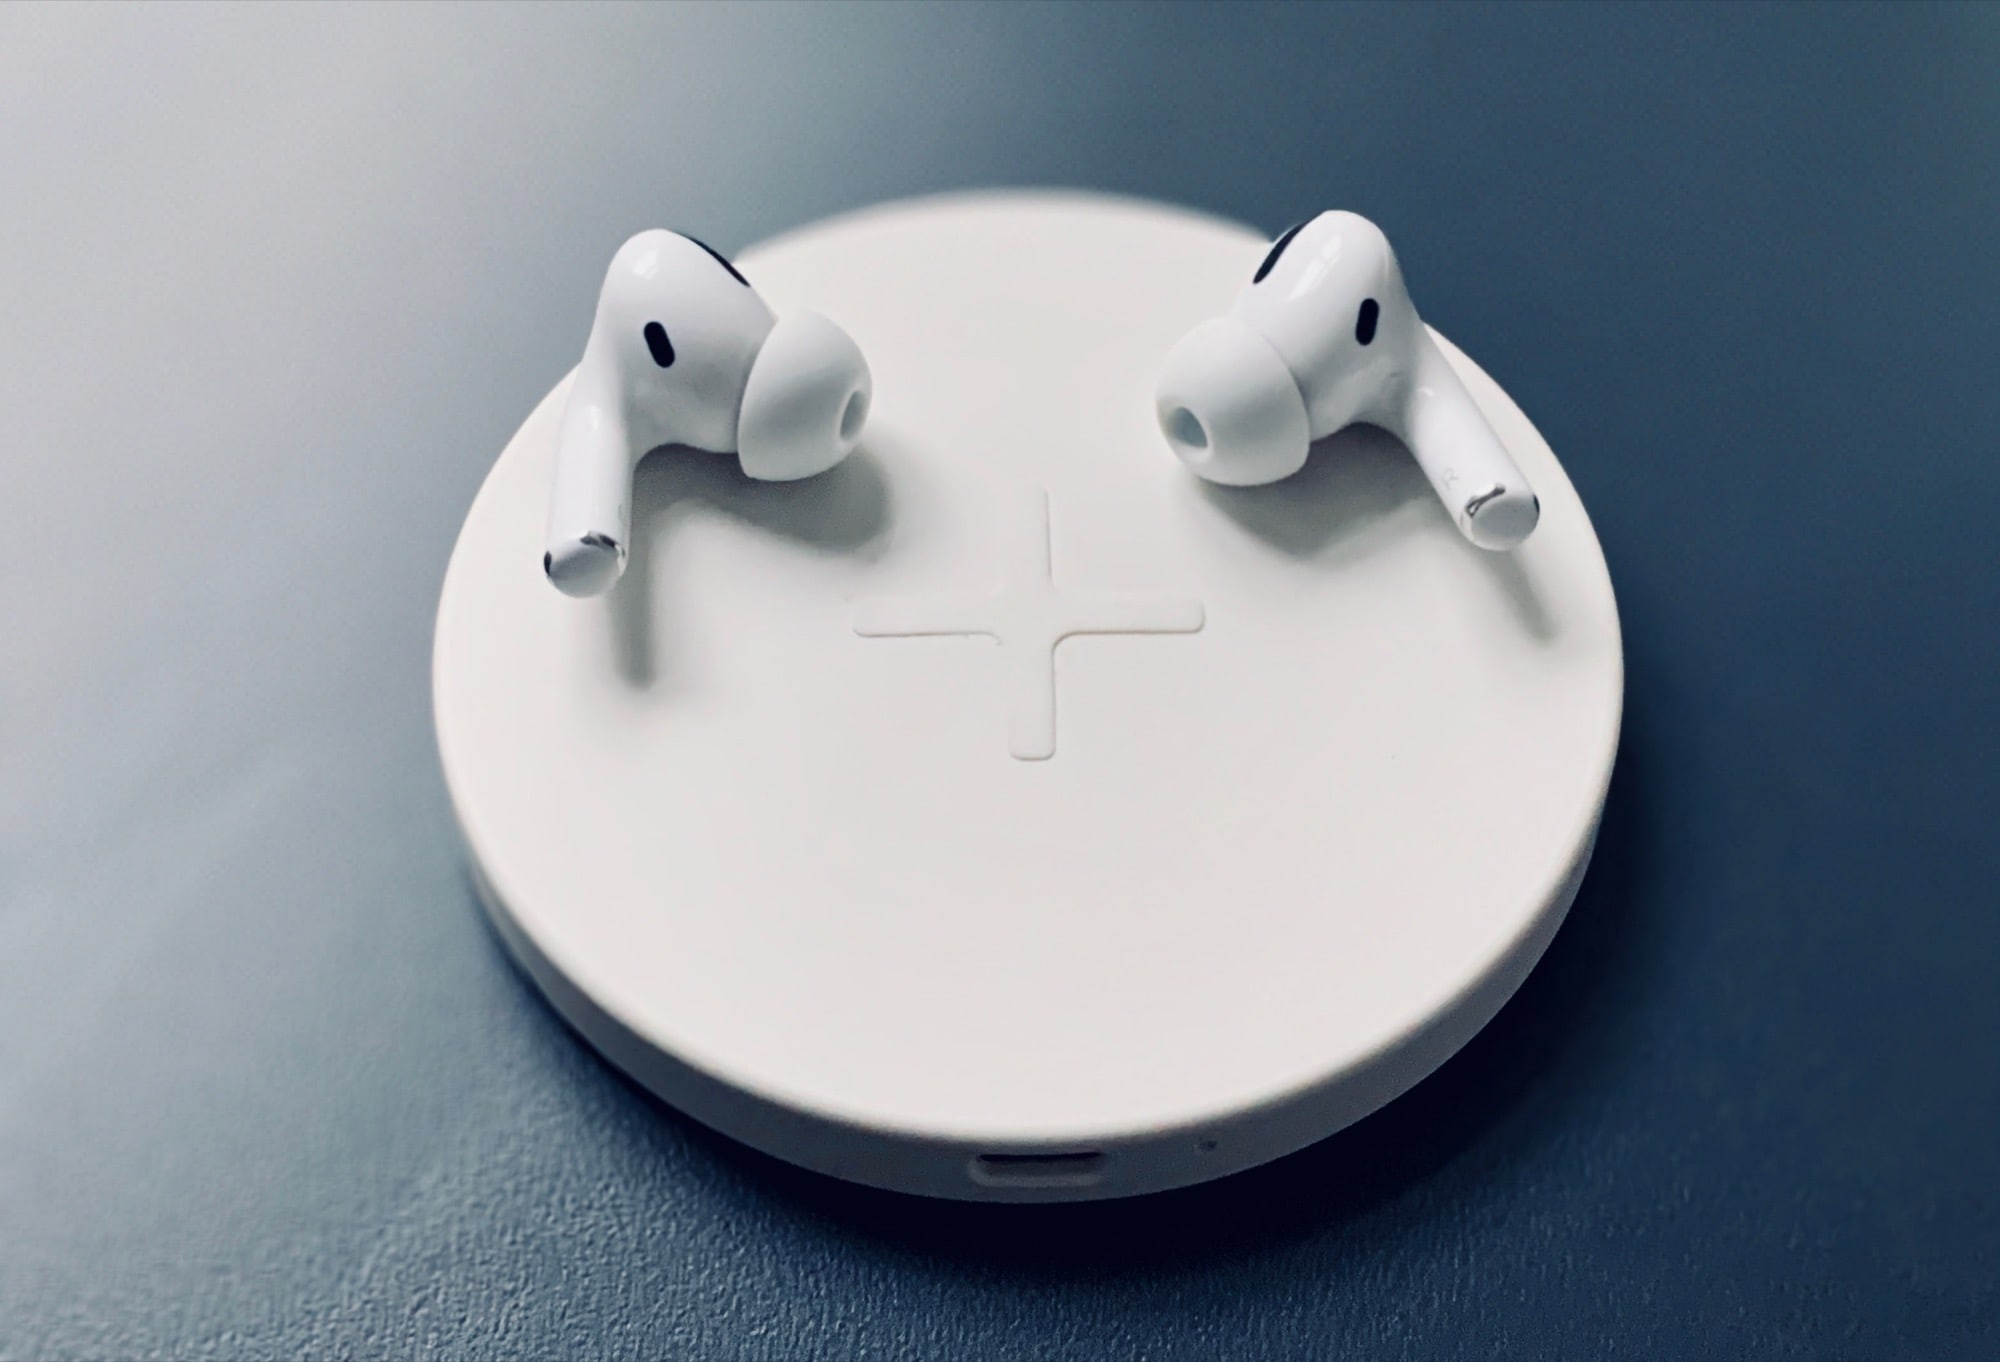 AirPods Pro settings